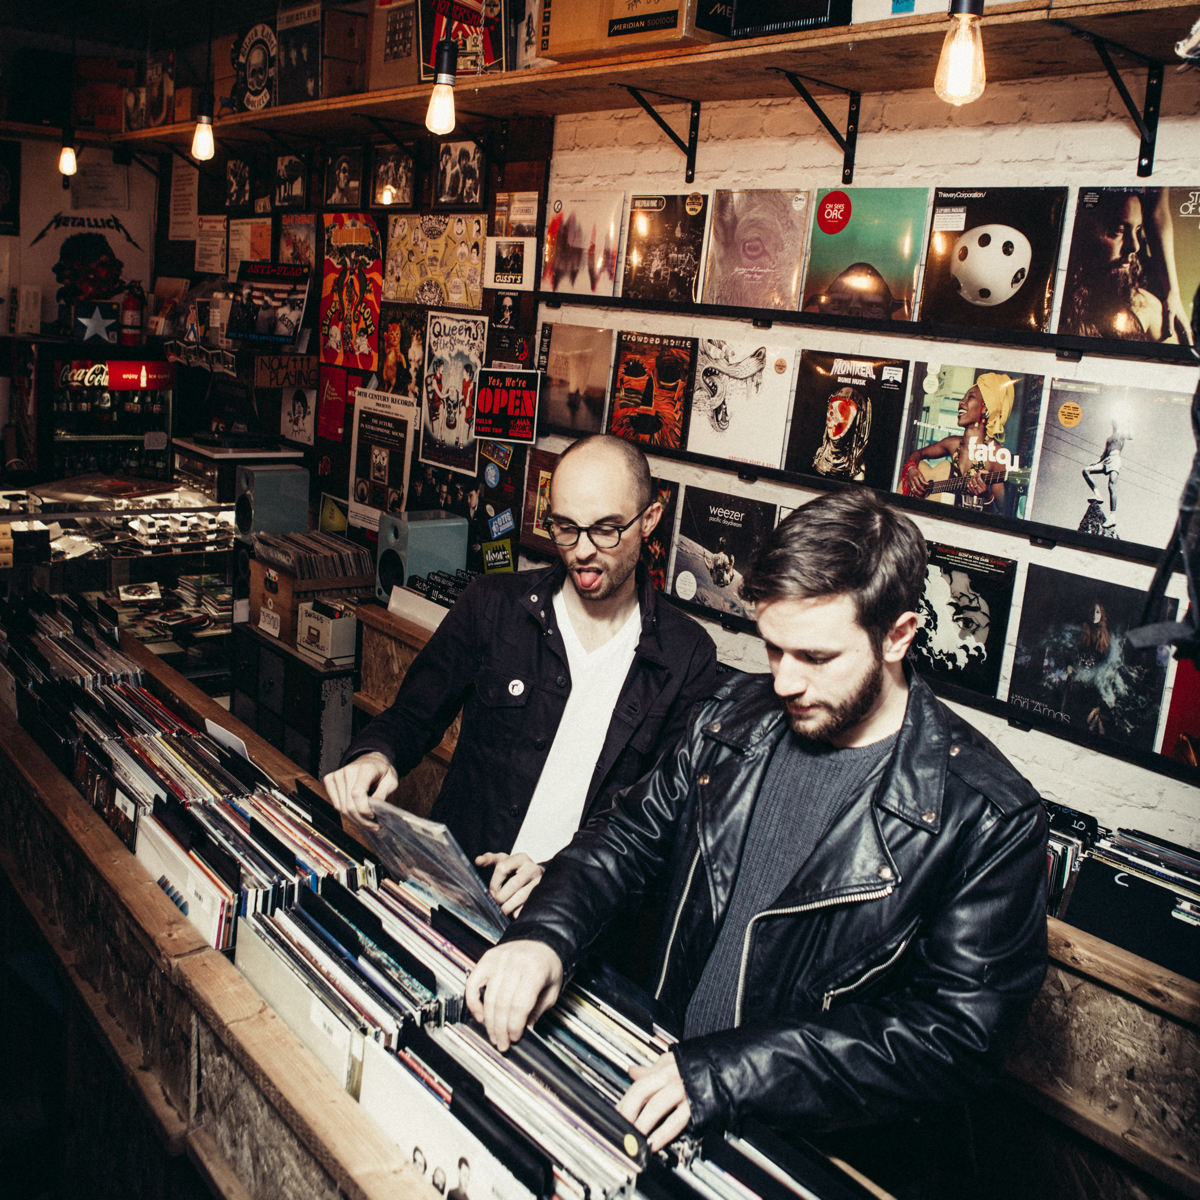 Evan Barden and Pat Cartelli digging through the crates at a record store